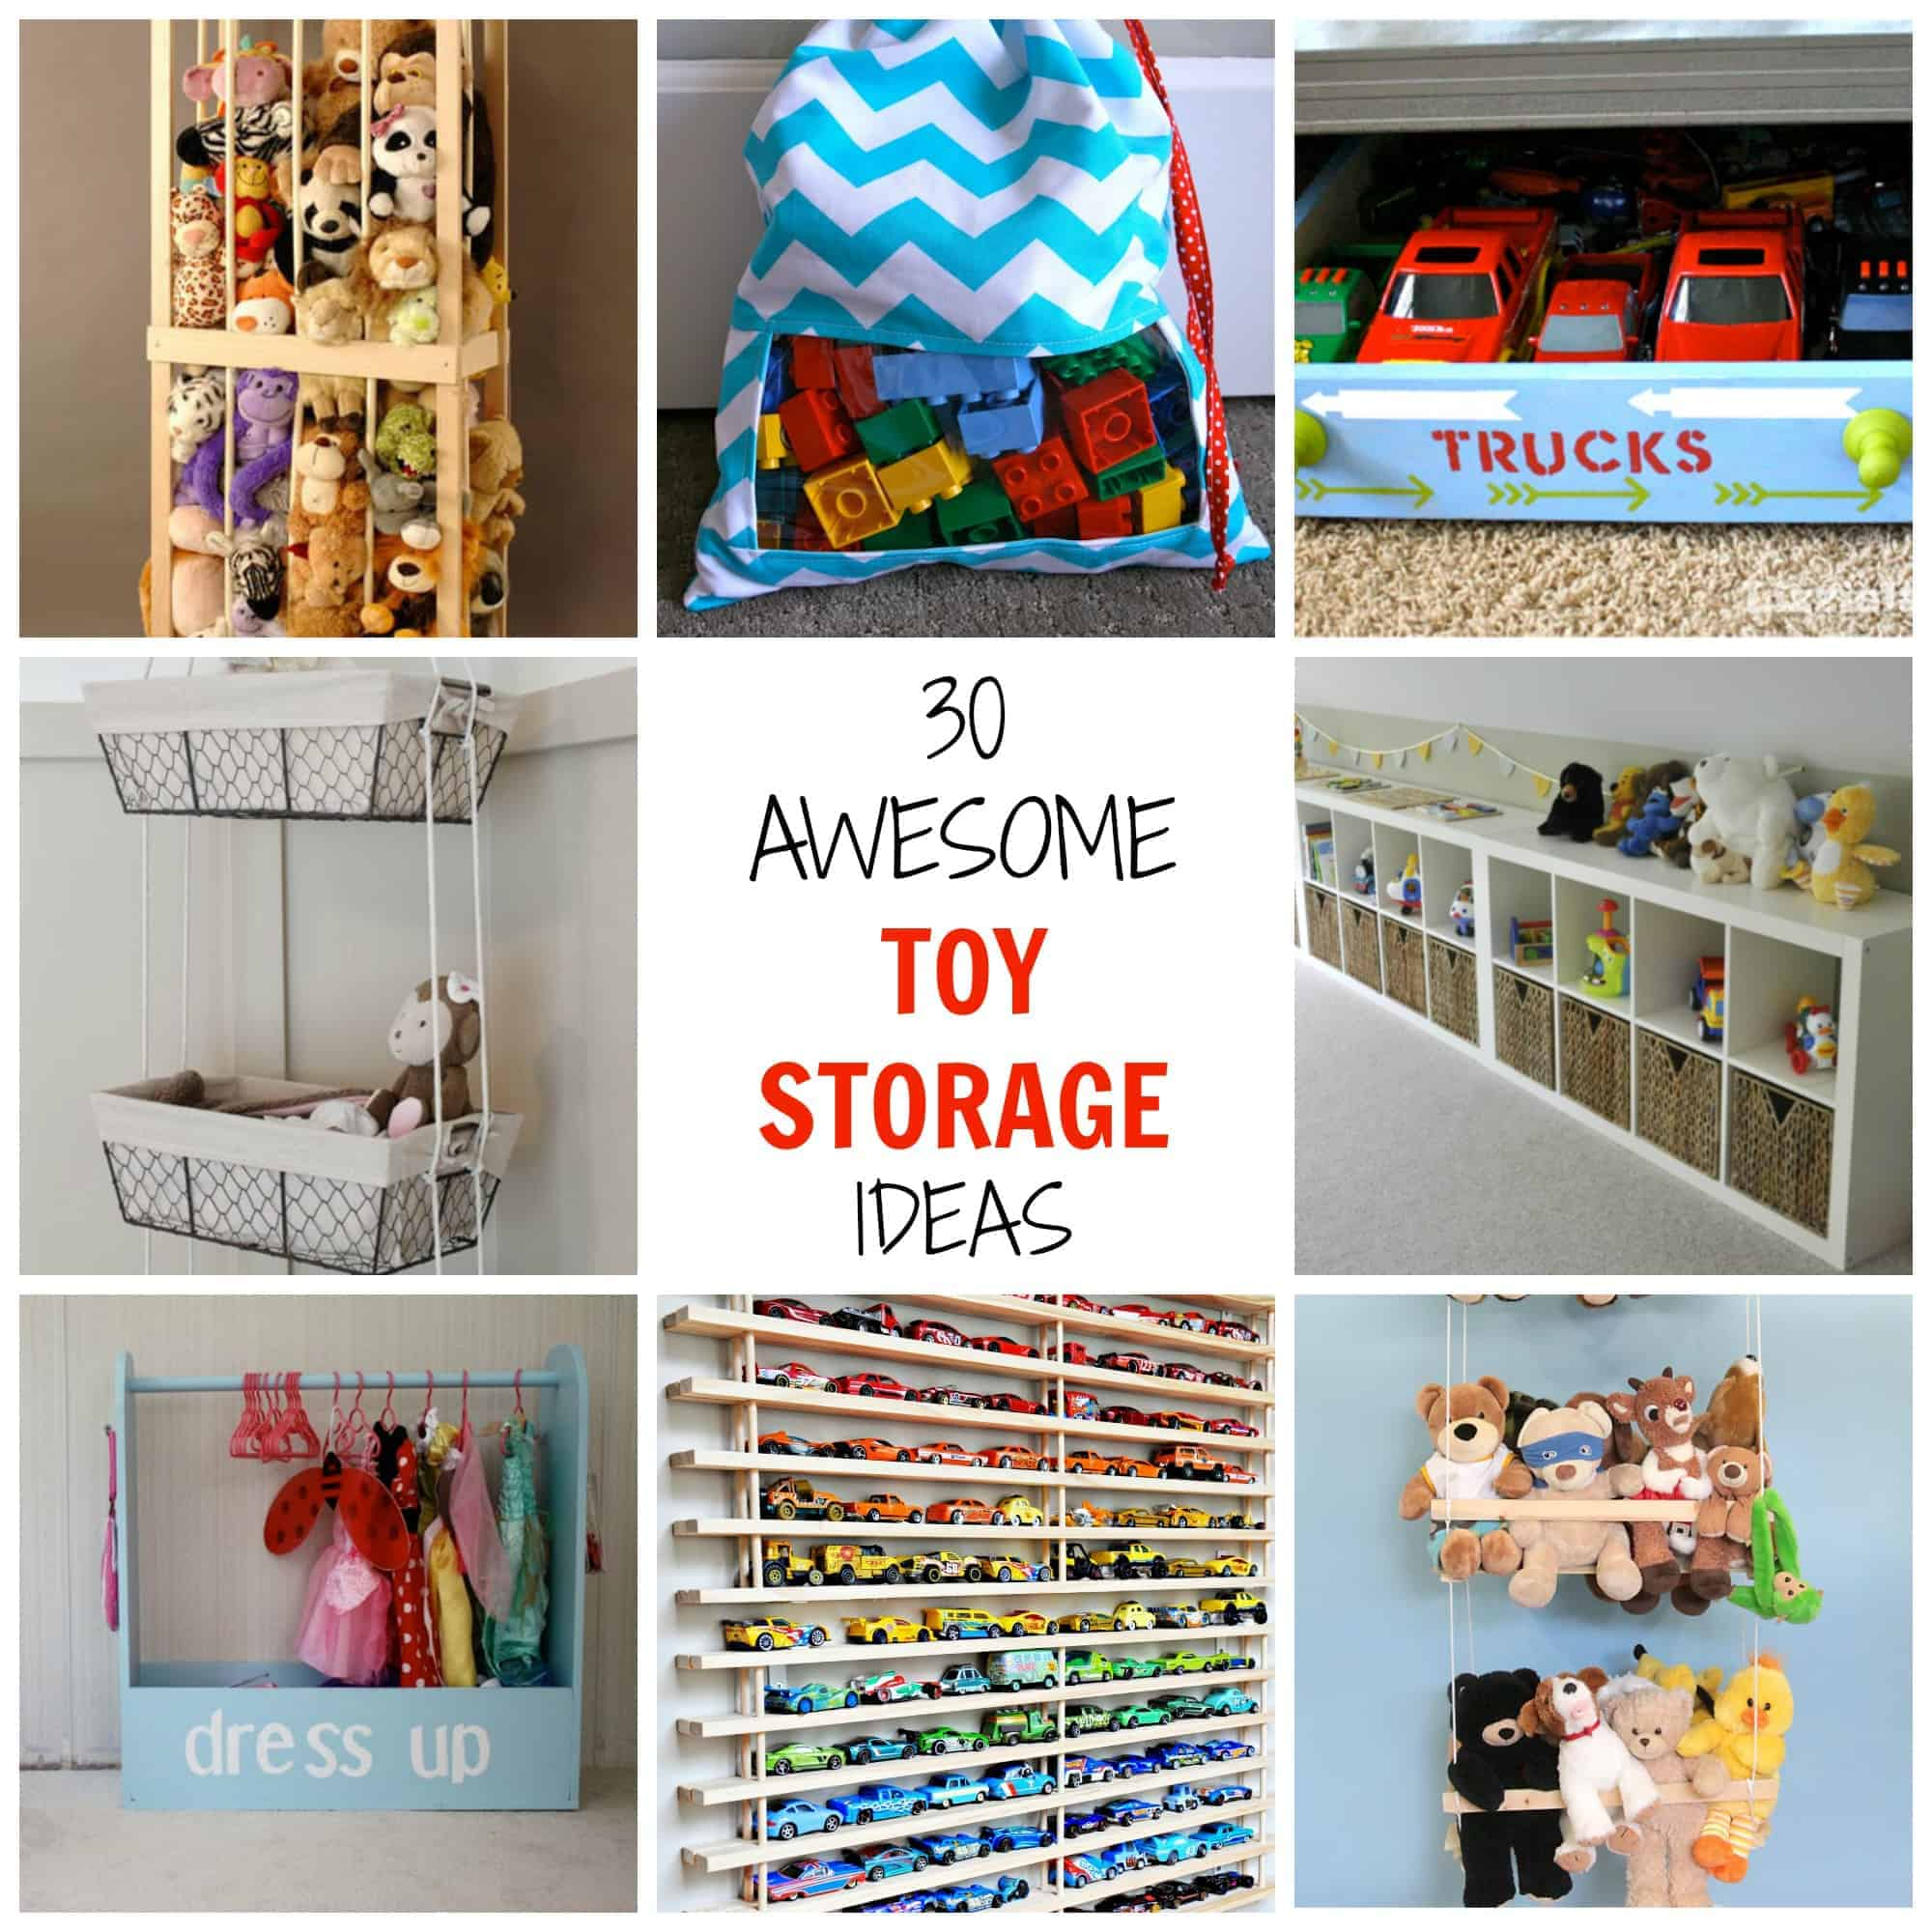 30 awesome toy storage ideas simplify create inspire - Storage ideas for toy room ...